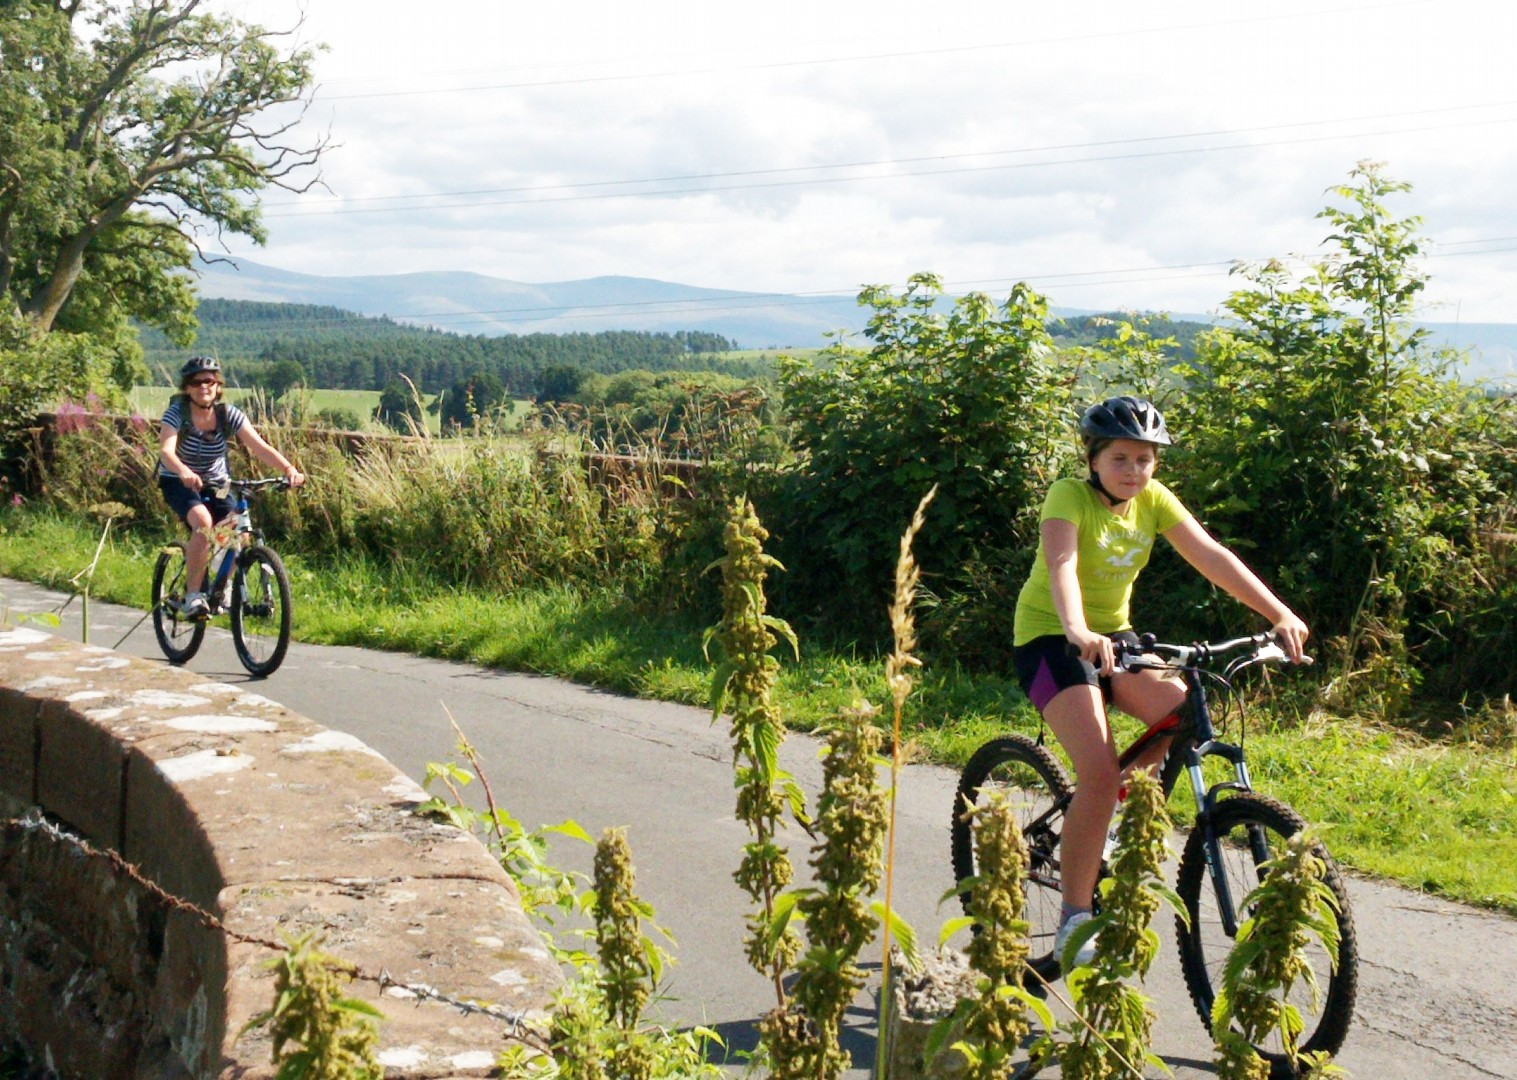 lake-district-cycling-family.jpg - UK - Lake District - Bike Skills - Family Cycling